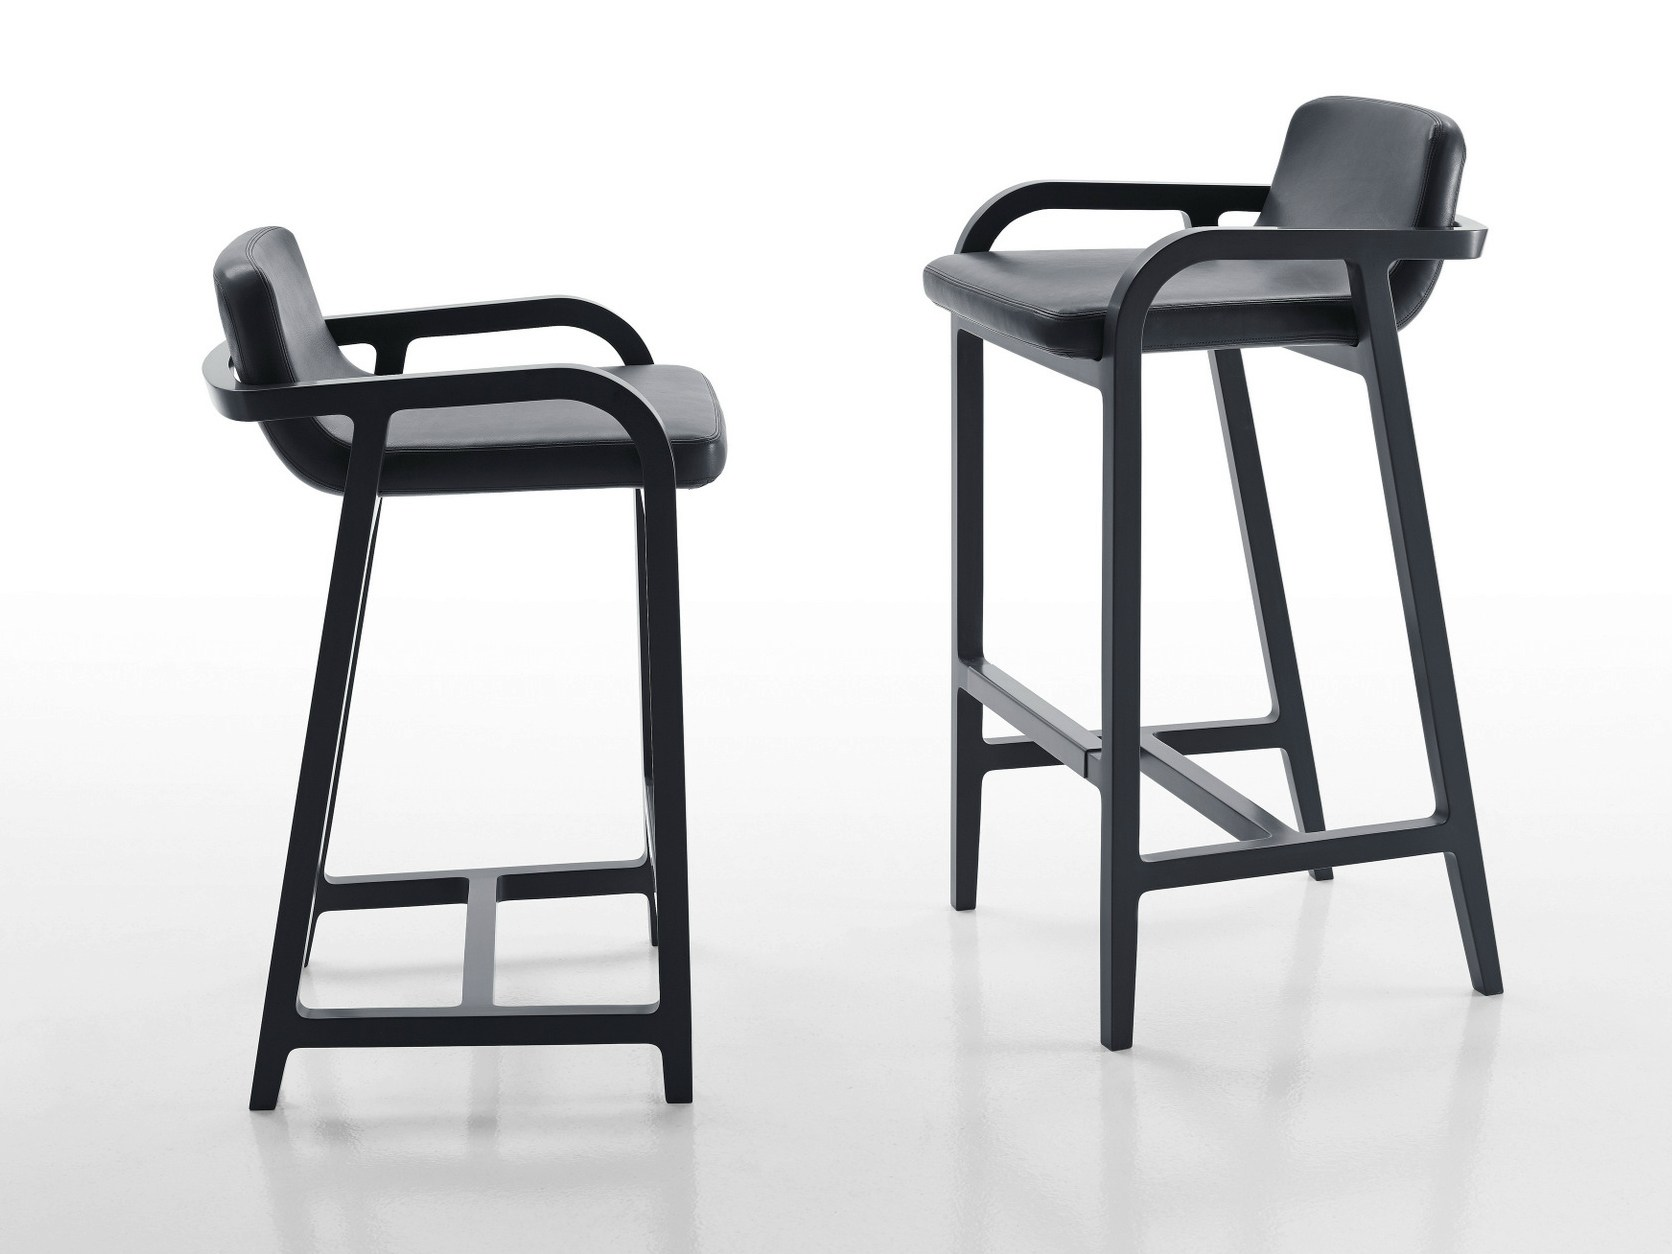 FULGENS Counter stool by Maxalto a brand of BampB Italia  : prodotti 190495 rel4d4e9635bcbb414bb73a47fa321ae0dc from www.archiproducts.com size 1672 x 1254 jpeg 163kB